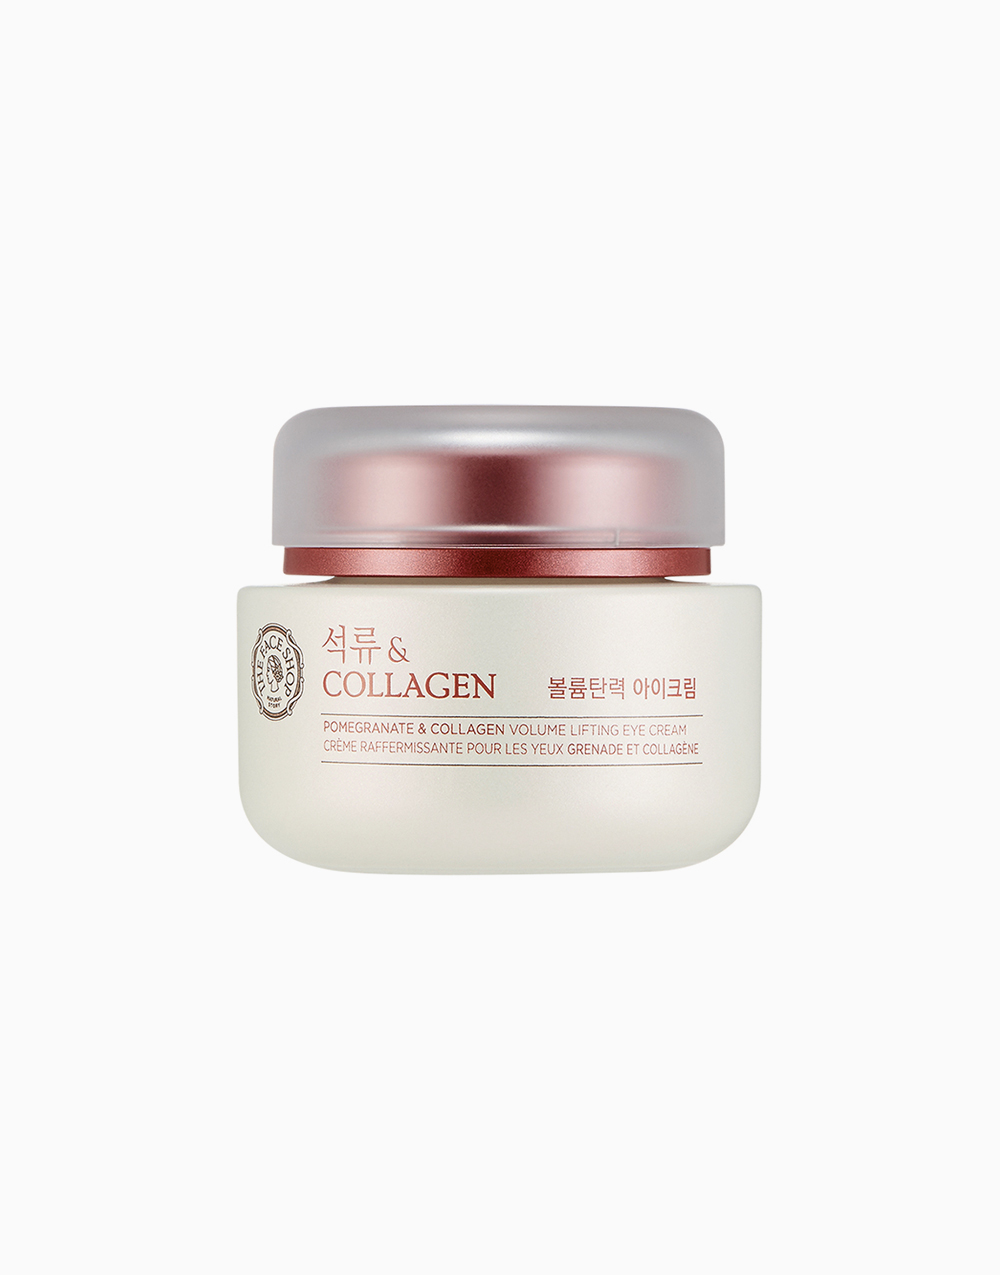 Pomegranate and Collagen Volume Lifting Eye Cream by The Face Shop